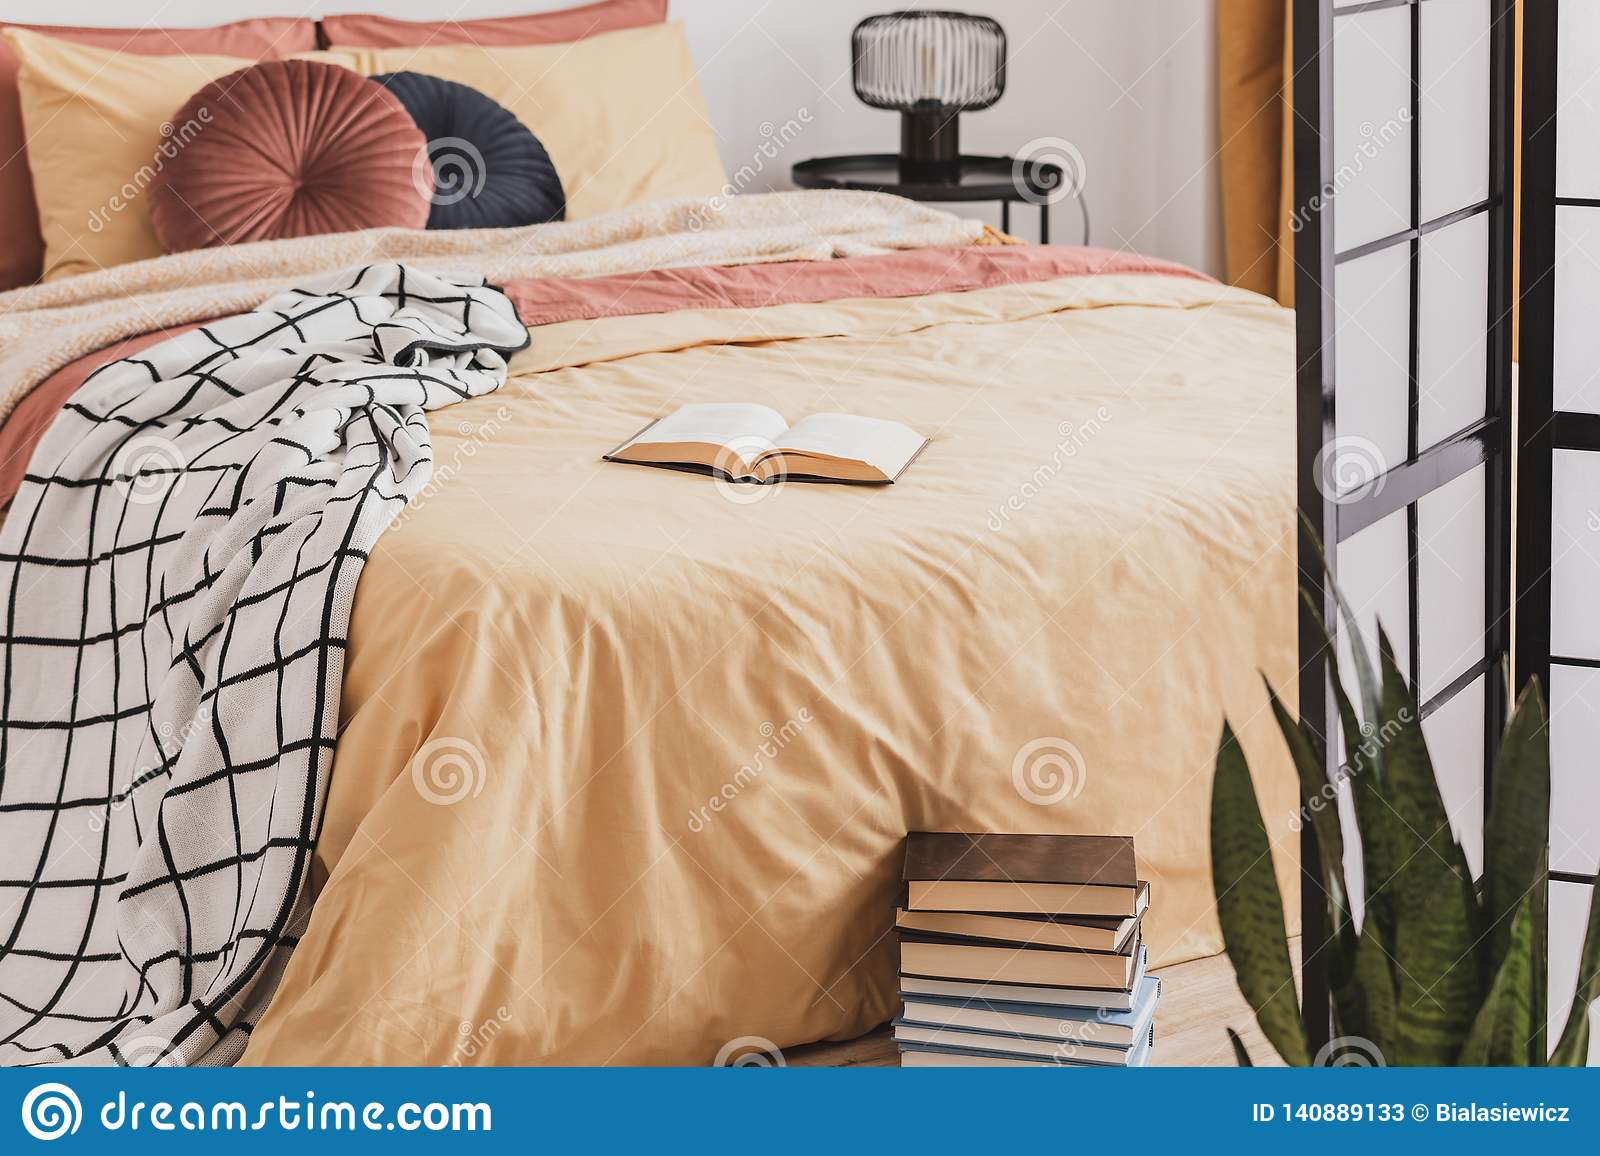 Foot Of The Bed pile of books in foot of king size bed with yellow duvet and